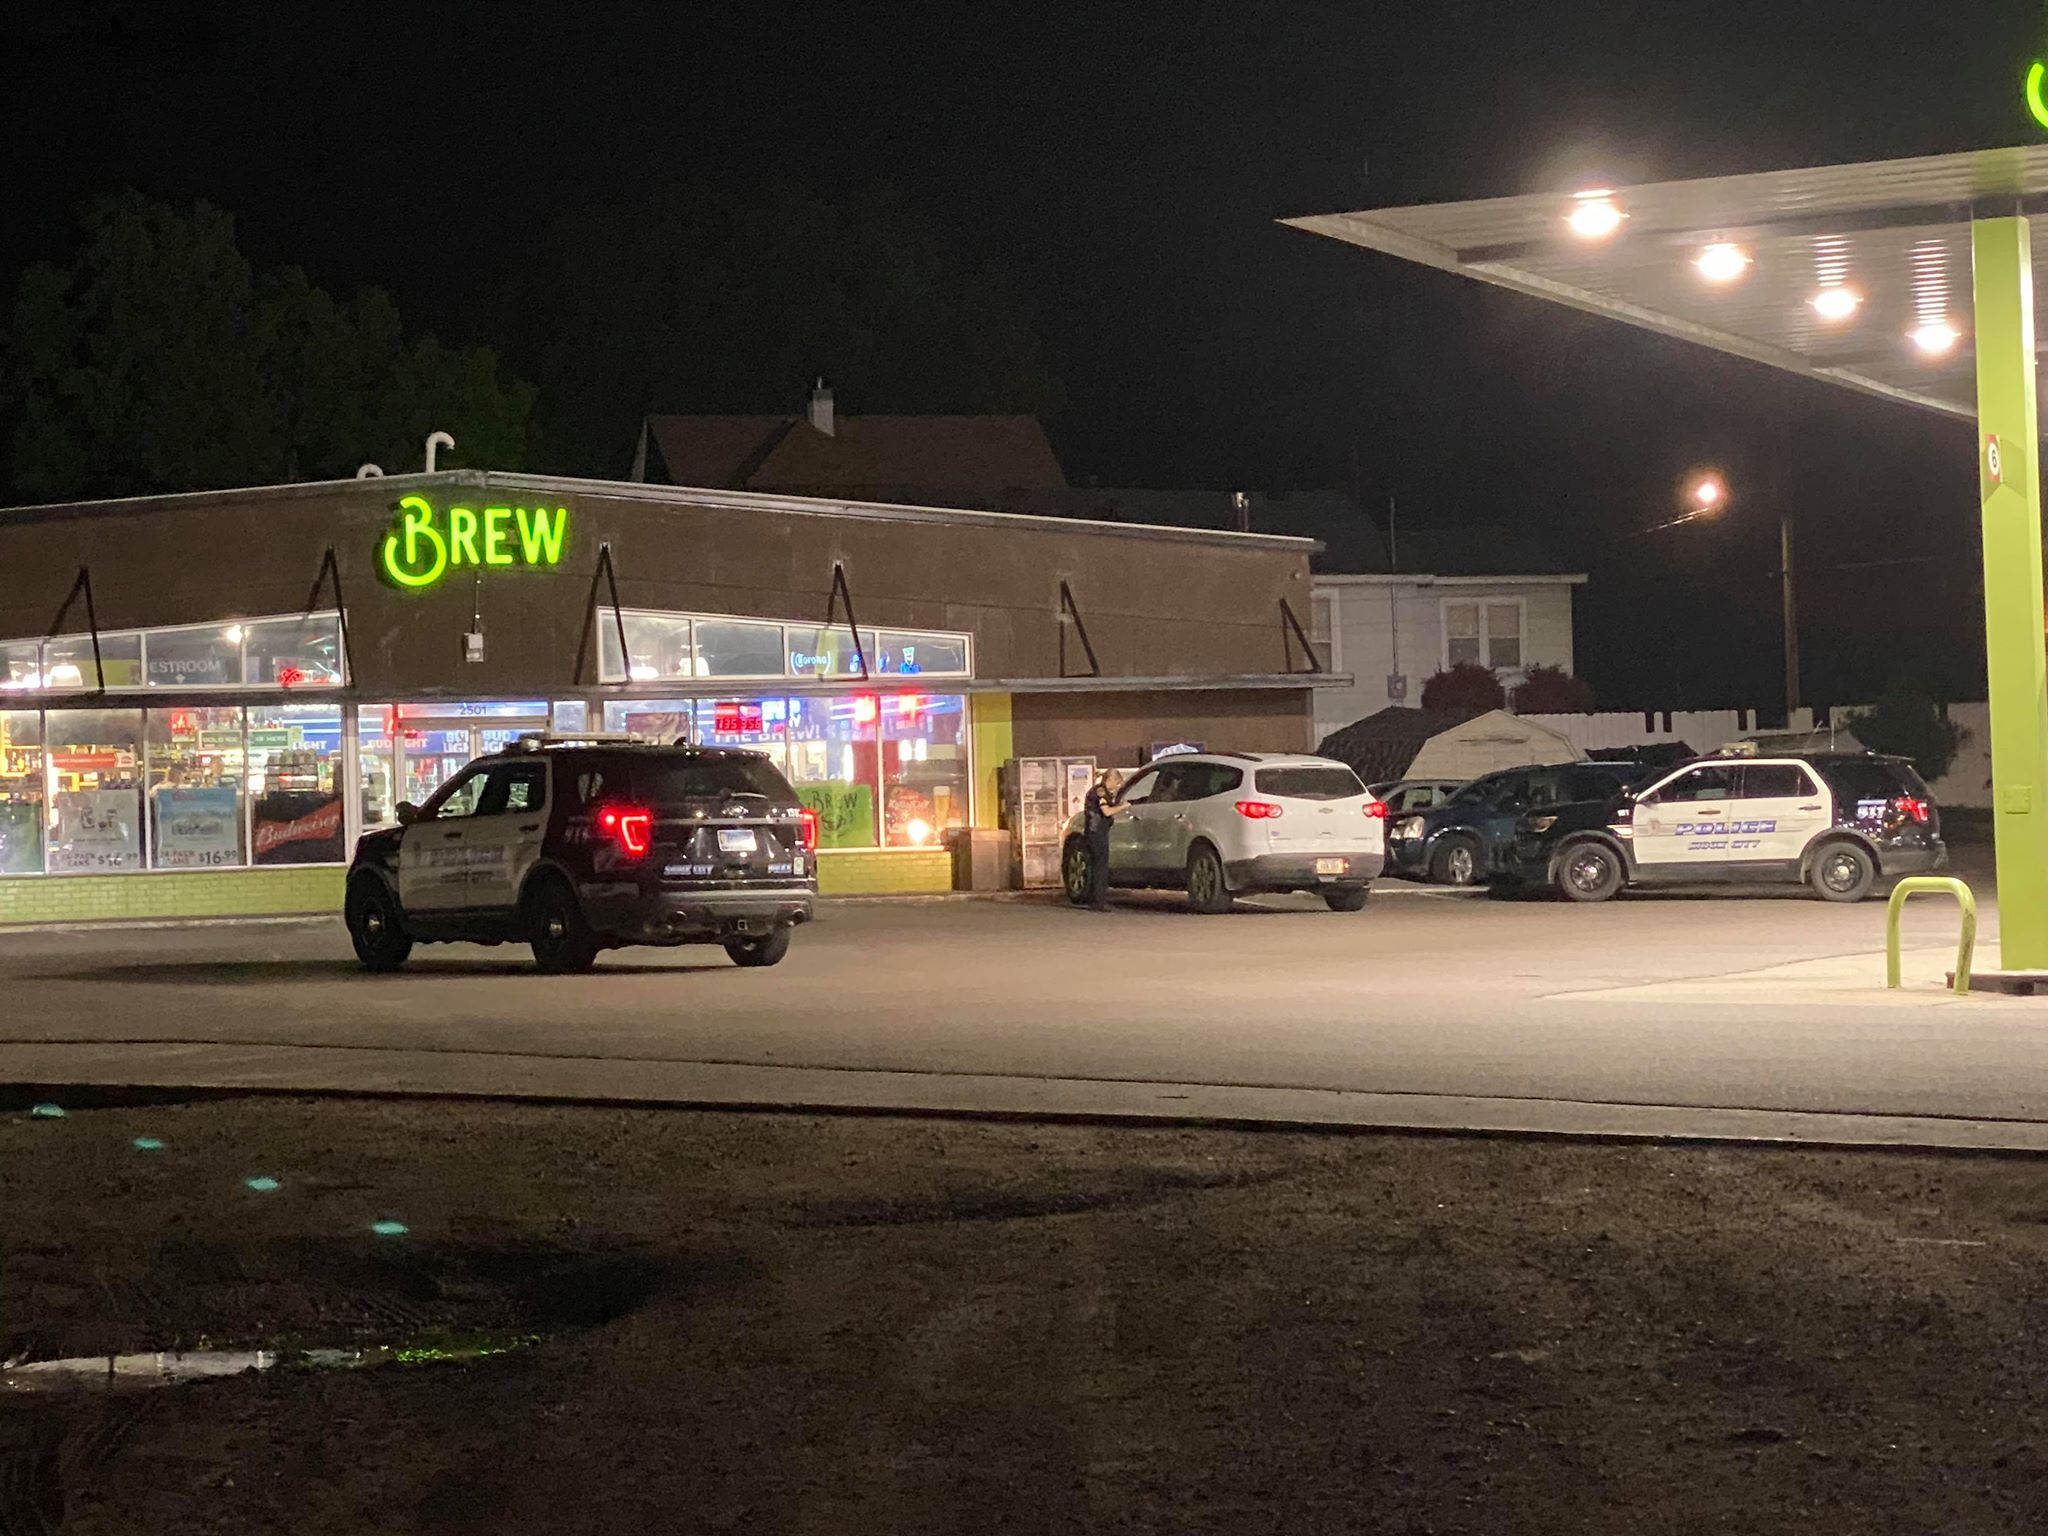 Armed Suspect Robs The Brew on Floyd Blvd